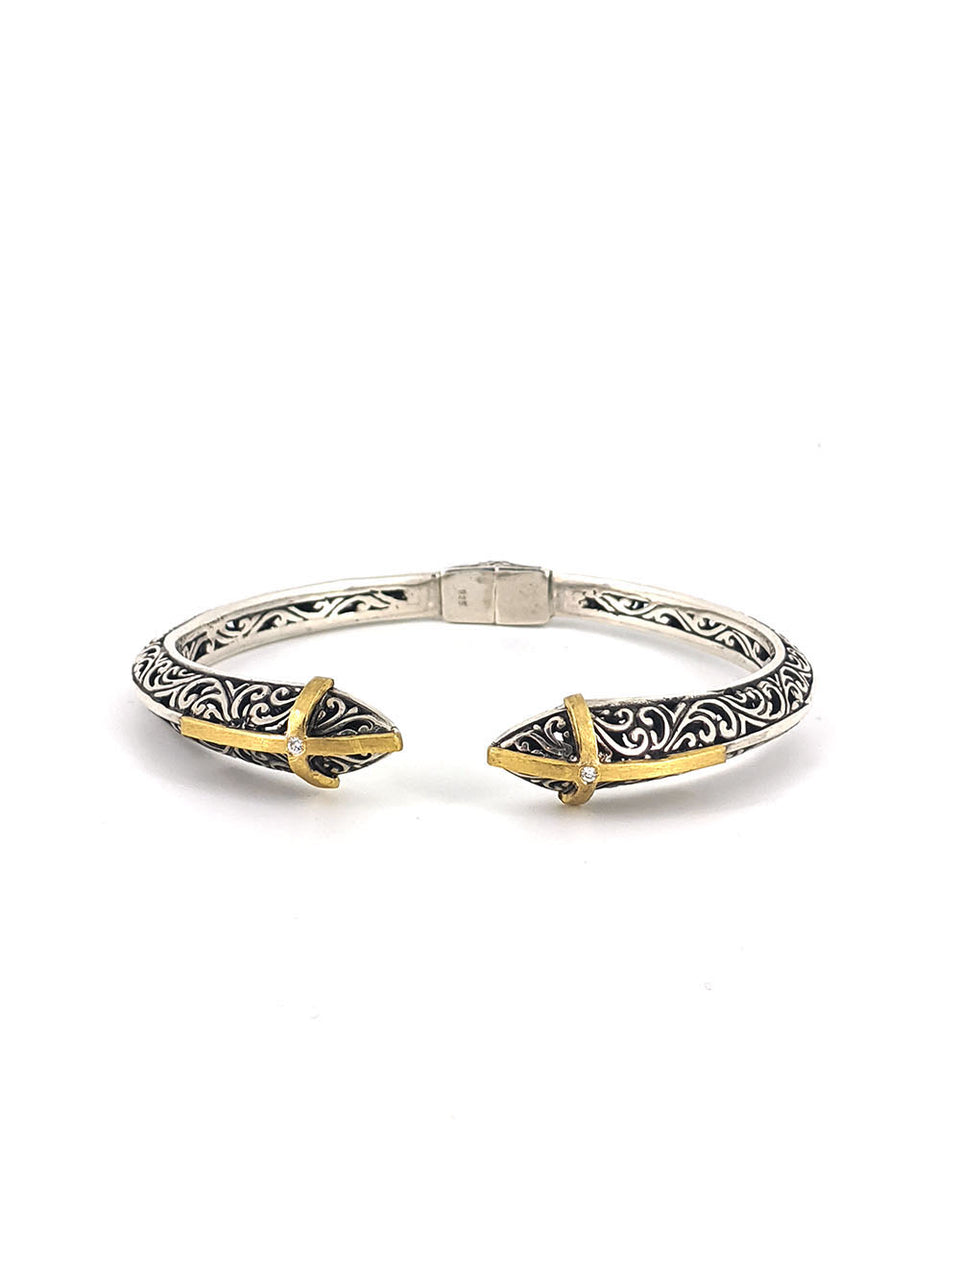 Gold Cross and Diamond on Silver Filigree Bangle